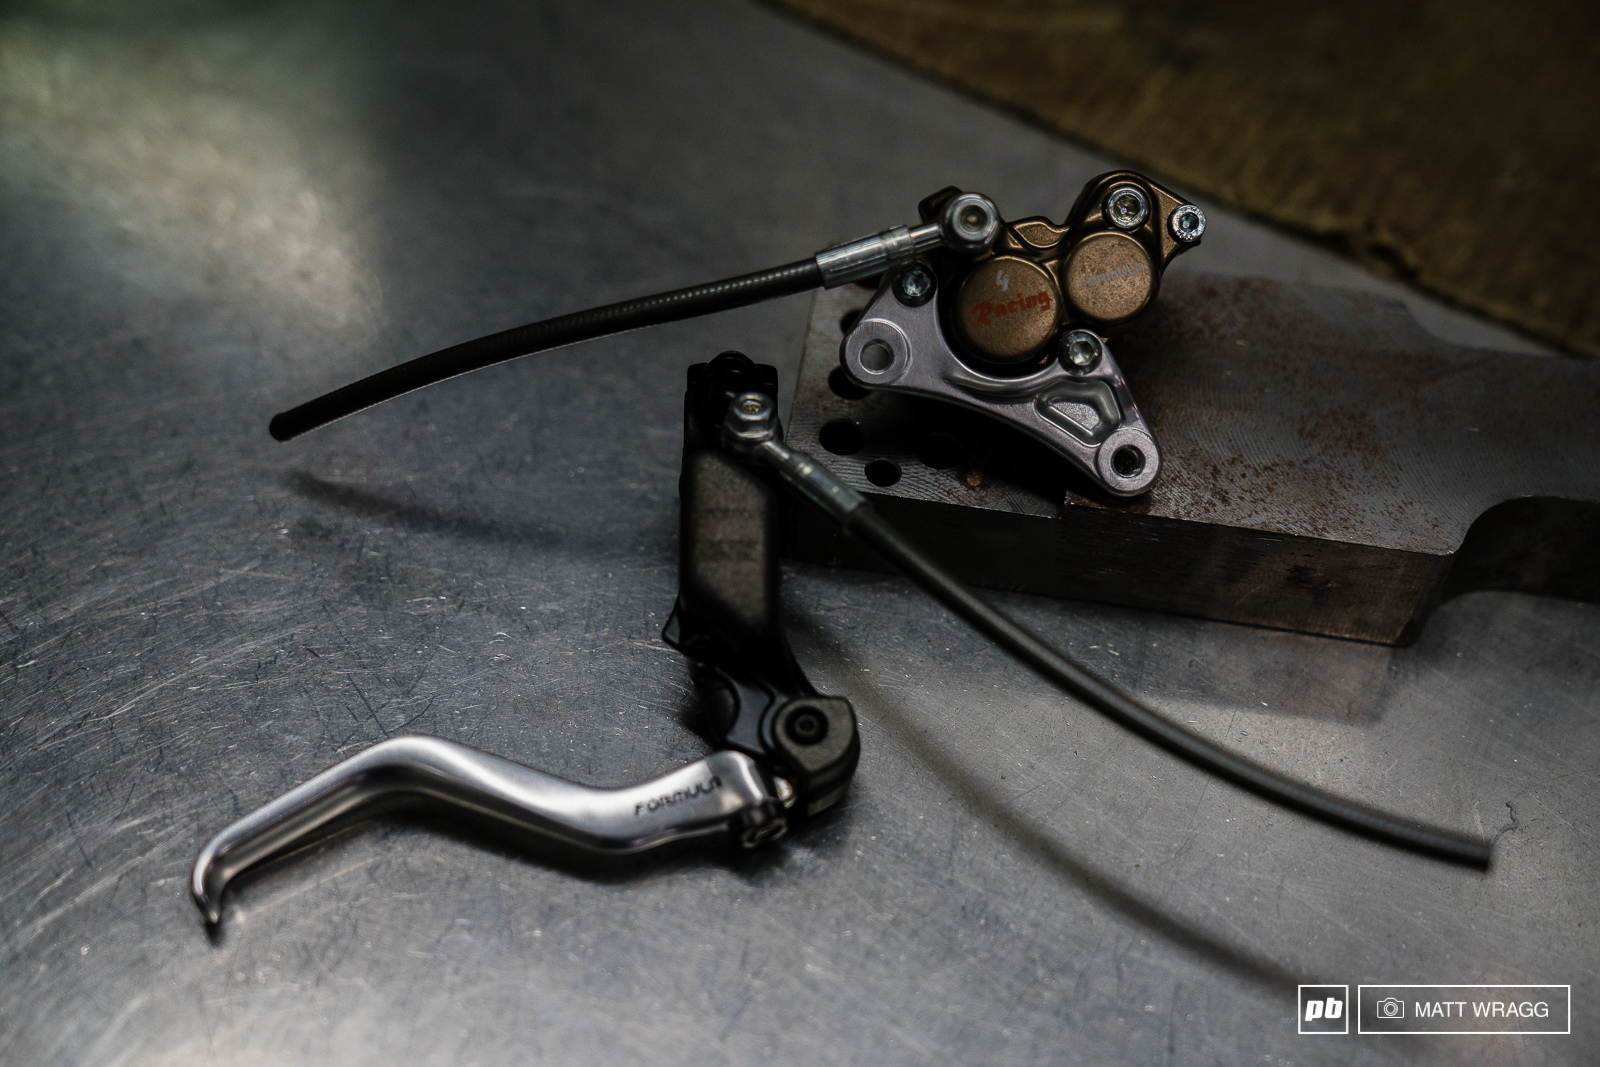 The next problem for mountain bike disc brakes - what if you need more power because you re riding DH A 4-piston brake is the commonly-accepted solution today and once more Formula were the first to prodce a 4-piston brake for a mountain bike the 4-Racing which was released in XXXX.